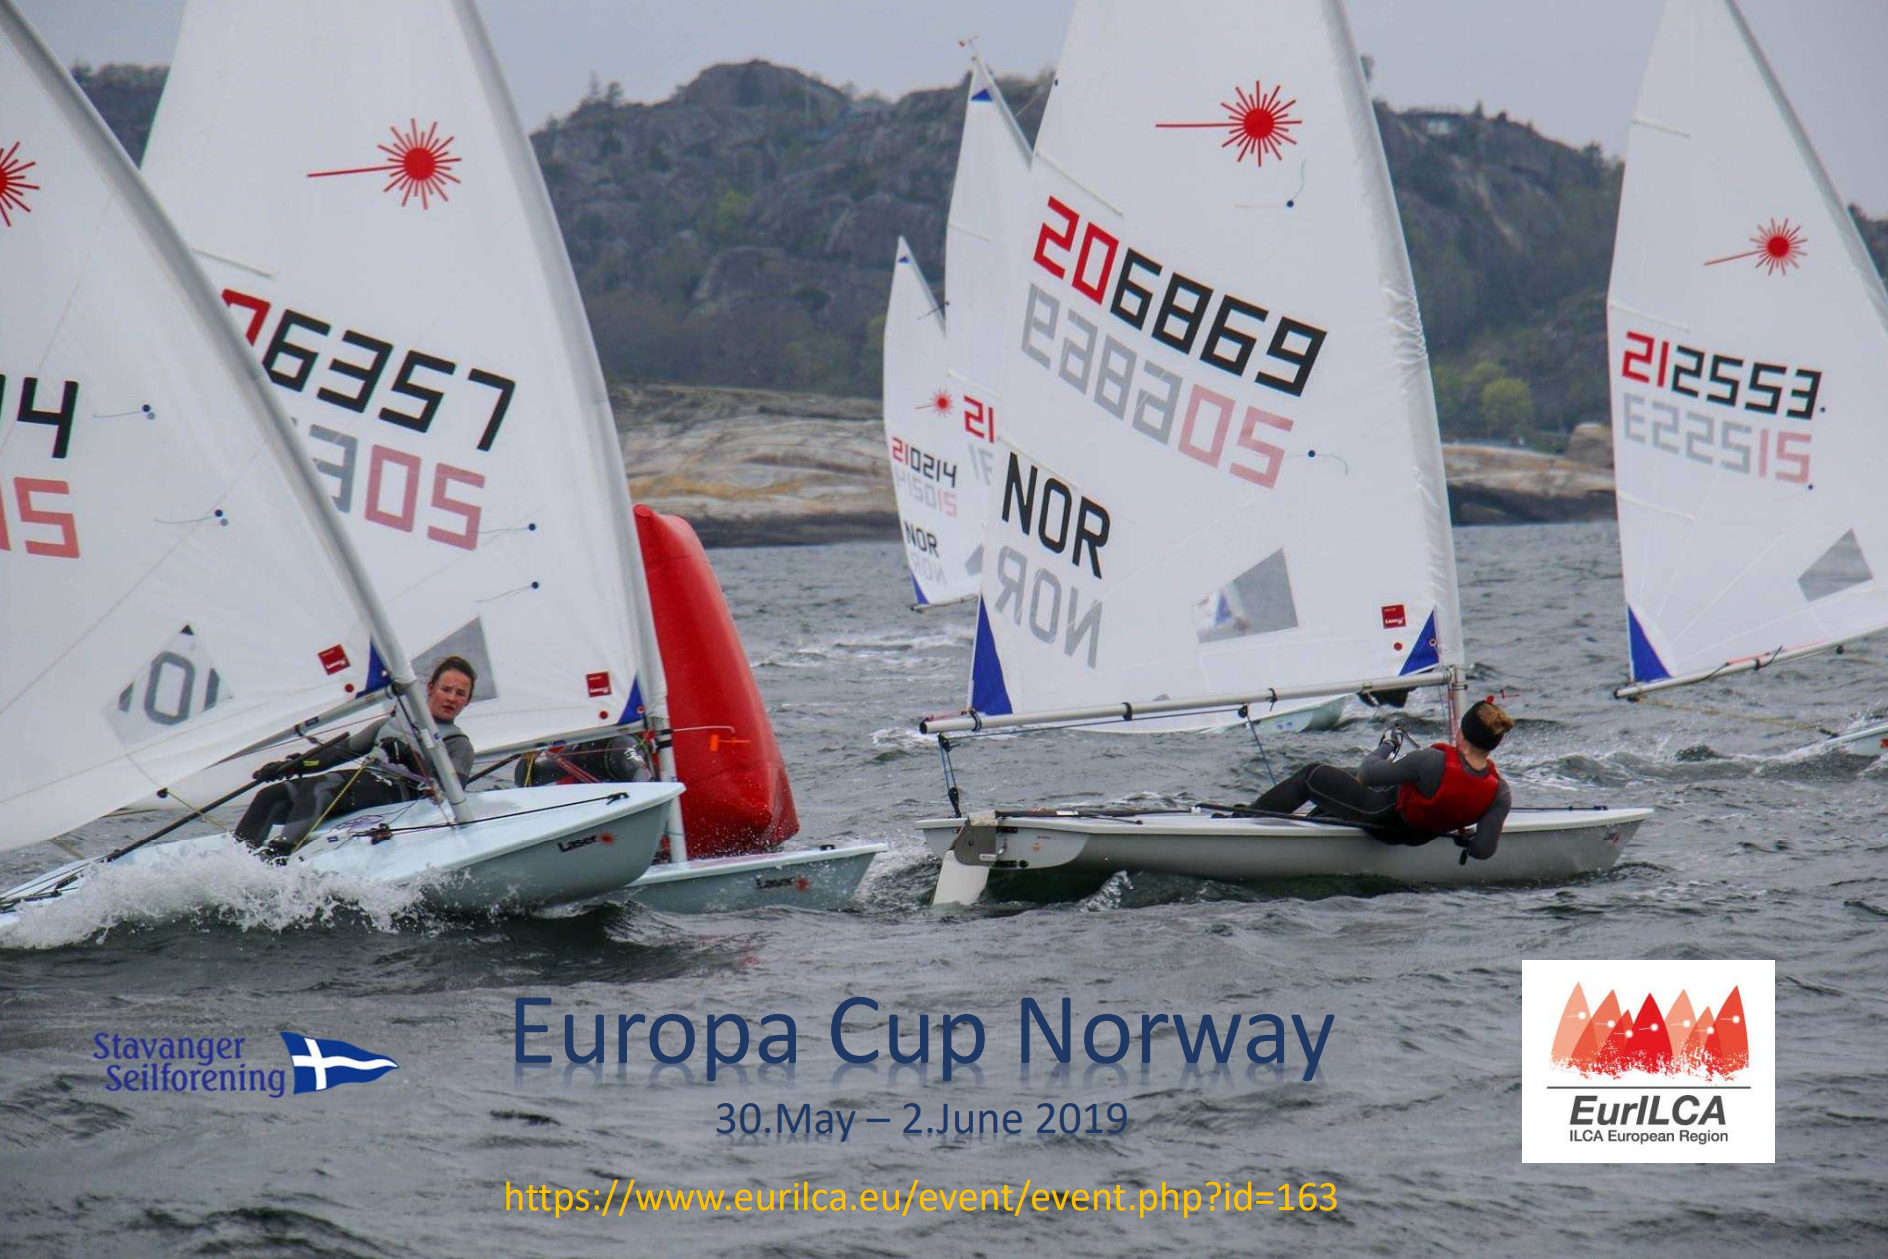 Europa Cup Norway